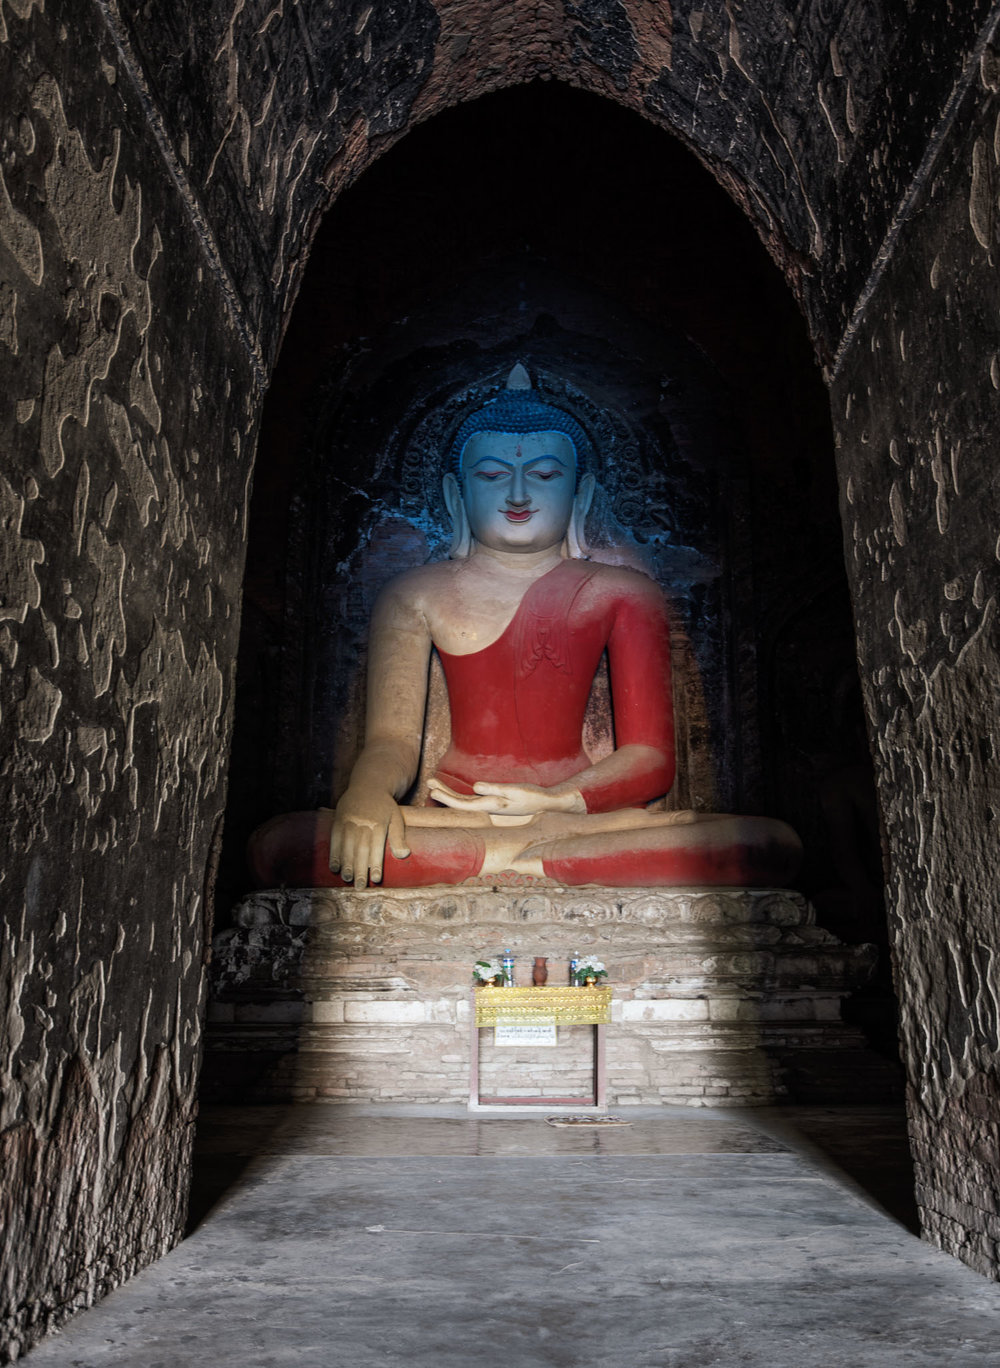 The light shines on the Buddha at Pahtothamya, an interesting way of symbolising his enlightenment.